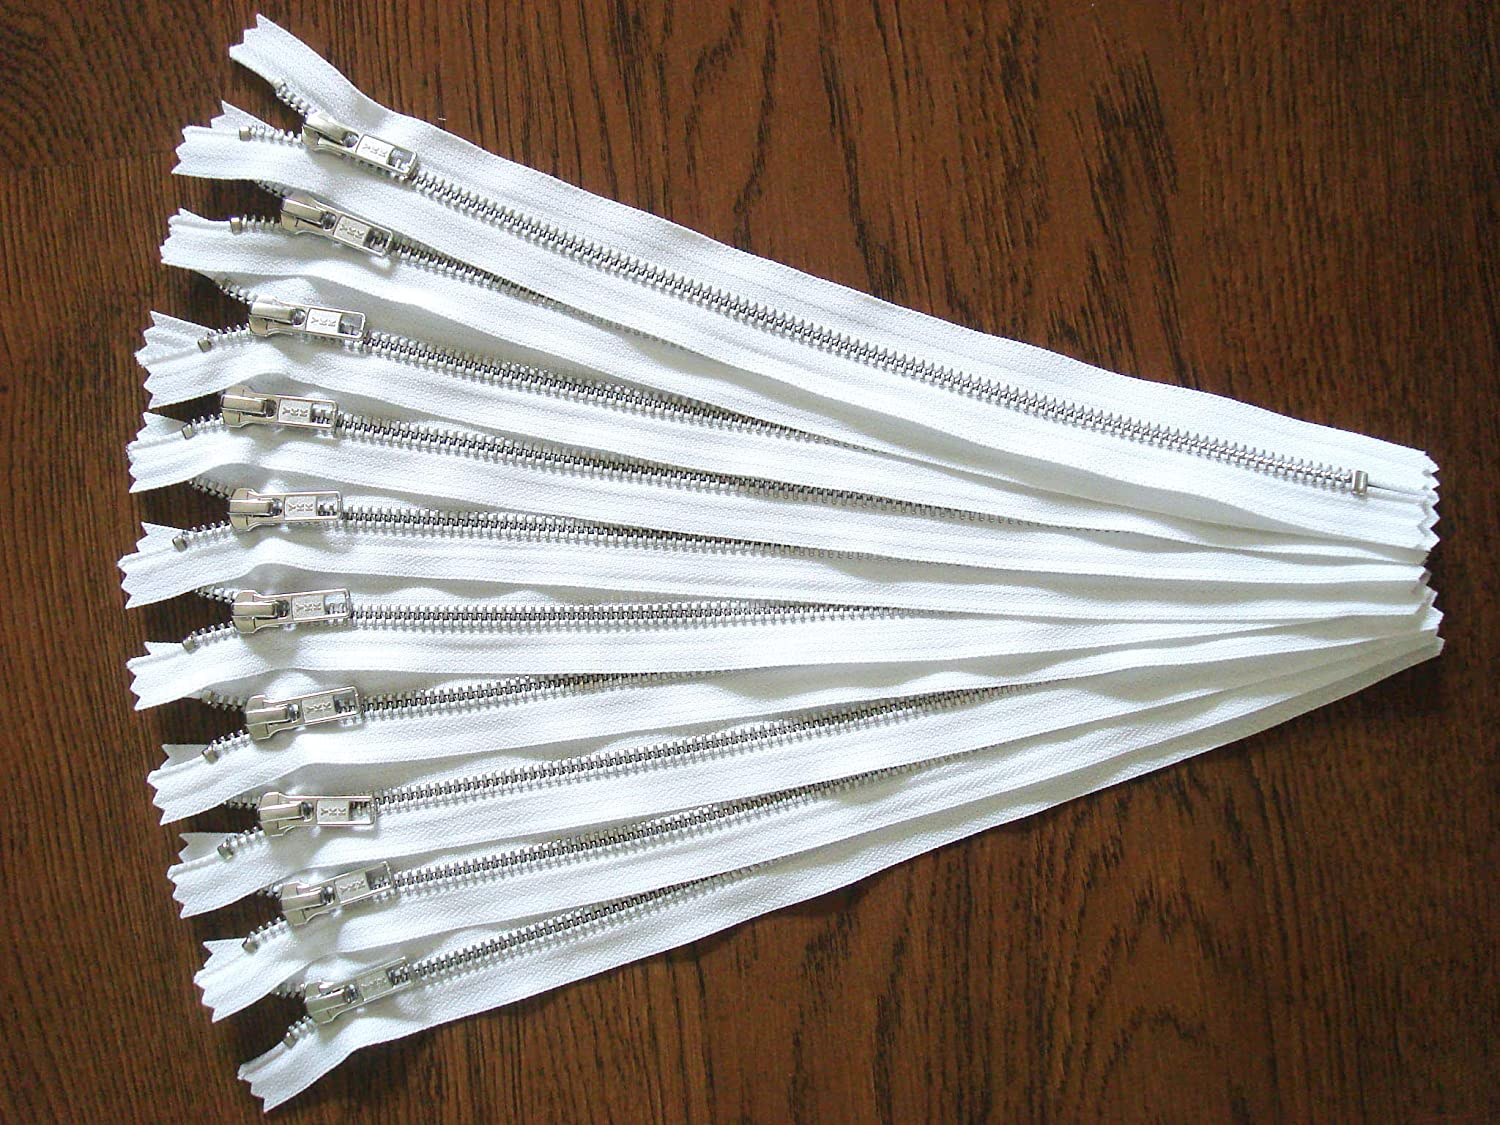 White Zippers 6 Inch YKK Metal Zippers in Silver No.5 Zippers for Bags Set of 12